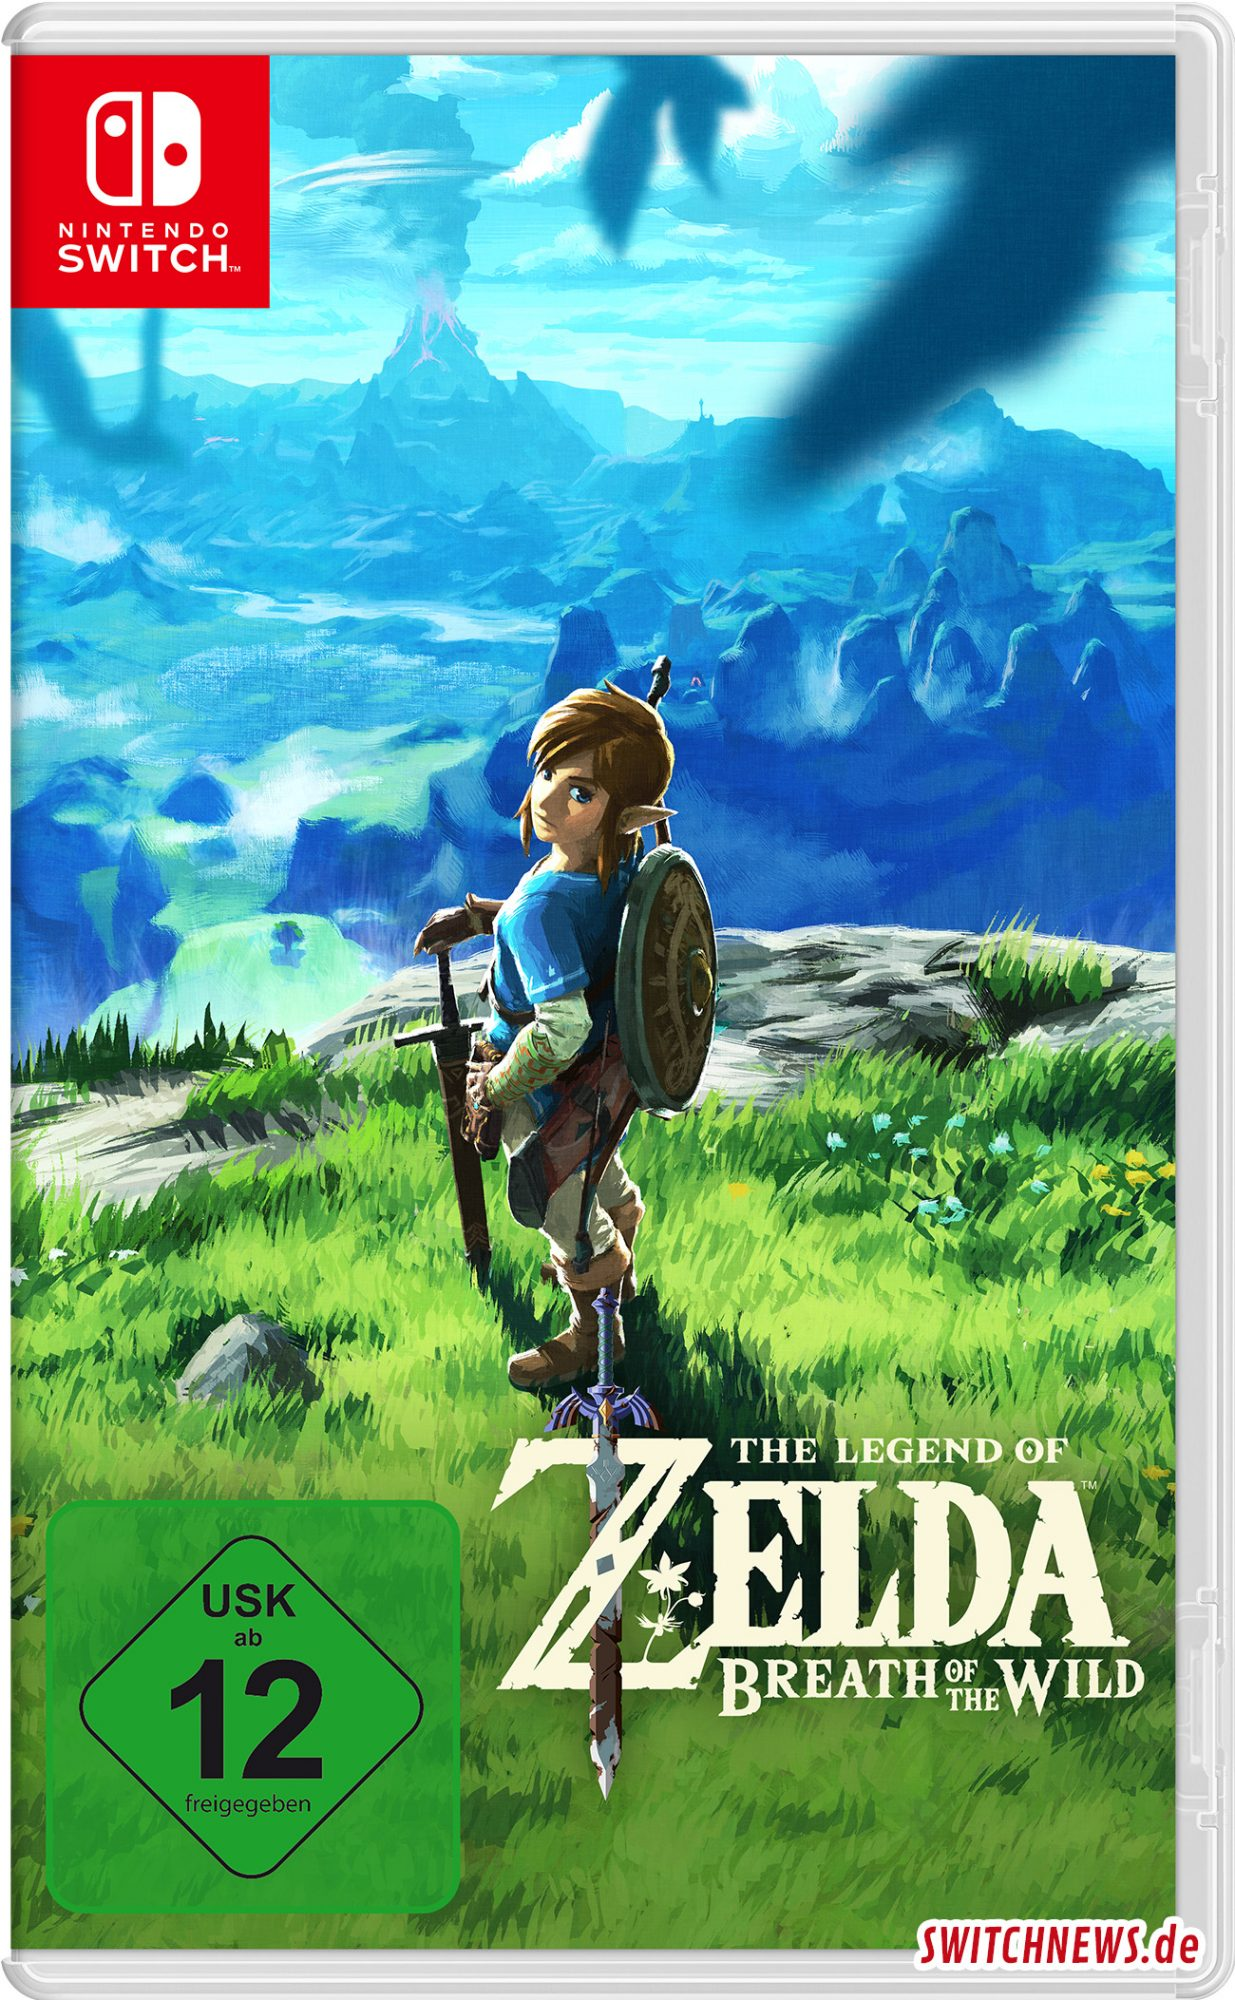 The Legend of Zelda: Breath of the Wild Cover